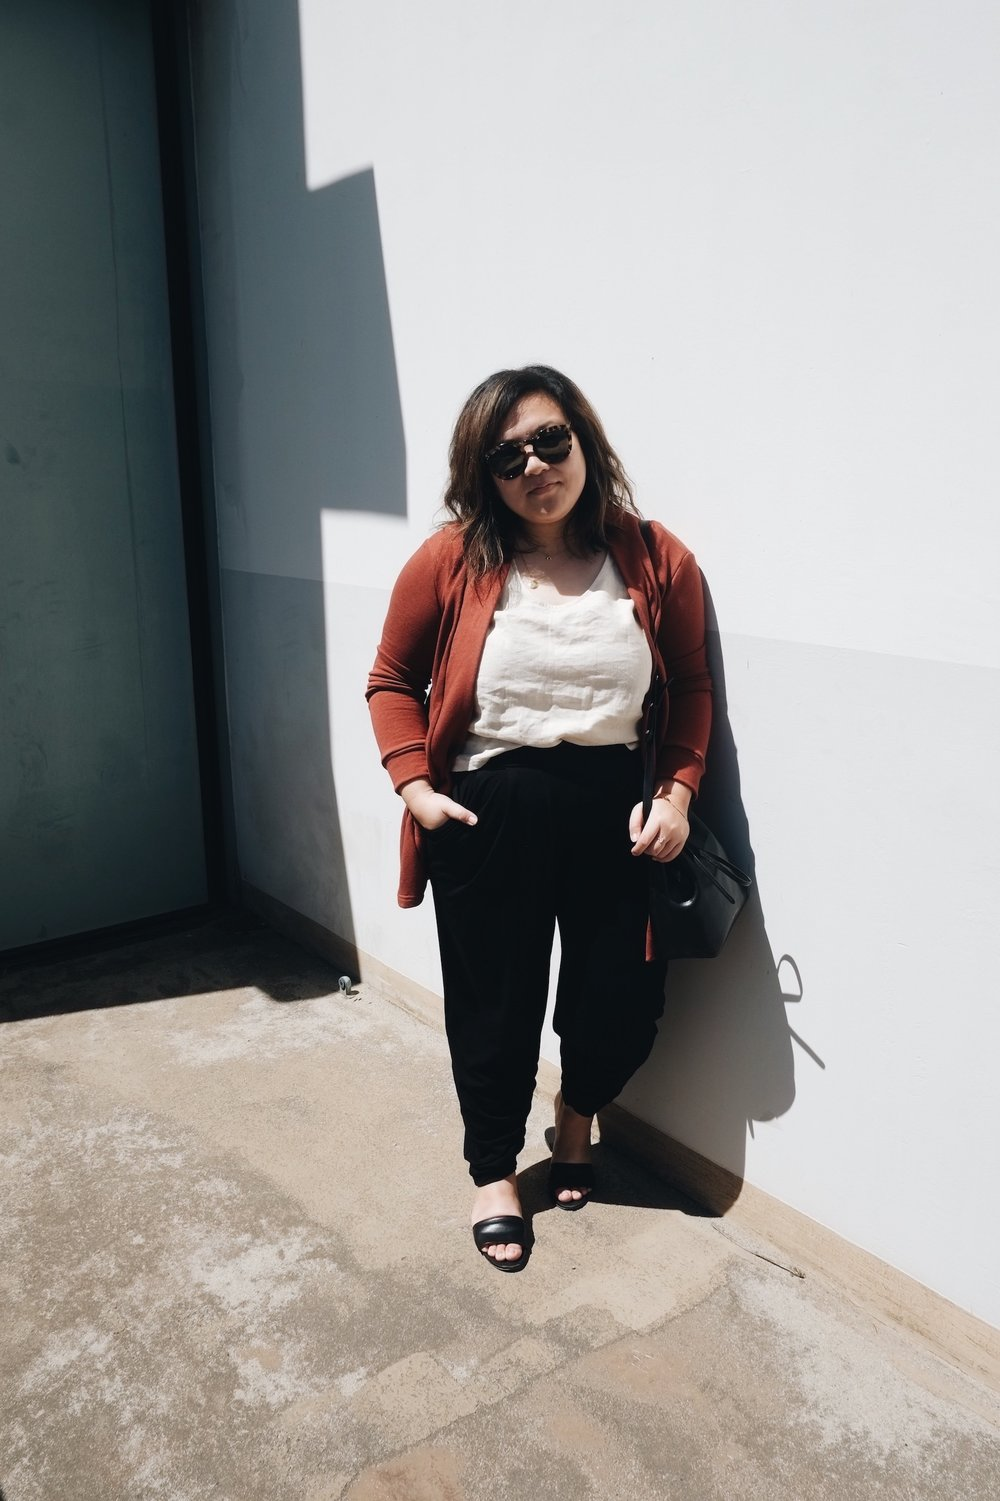 Black, white, and rust red minimalist outfit // A Week Of Minimalist Uniform Outfits With Jasmine Hwang From The Pleb Life on The Good Trade